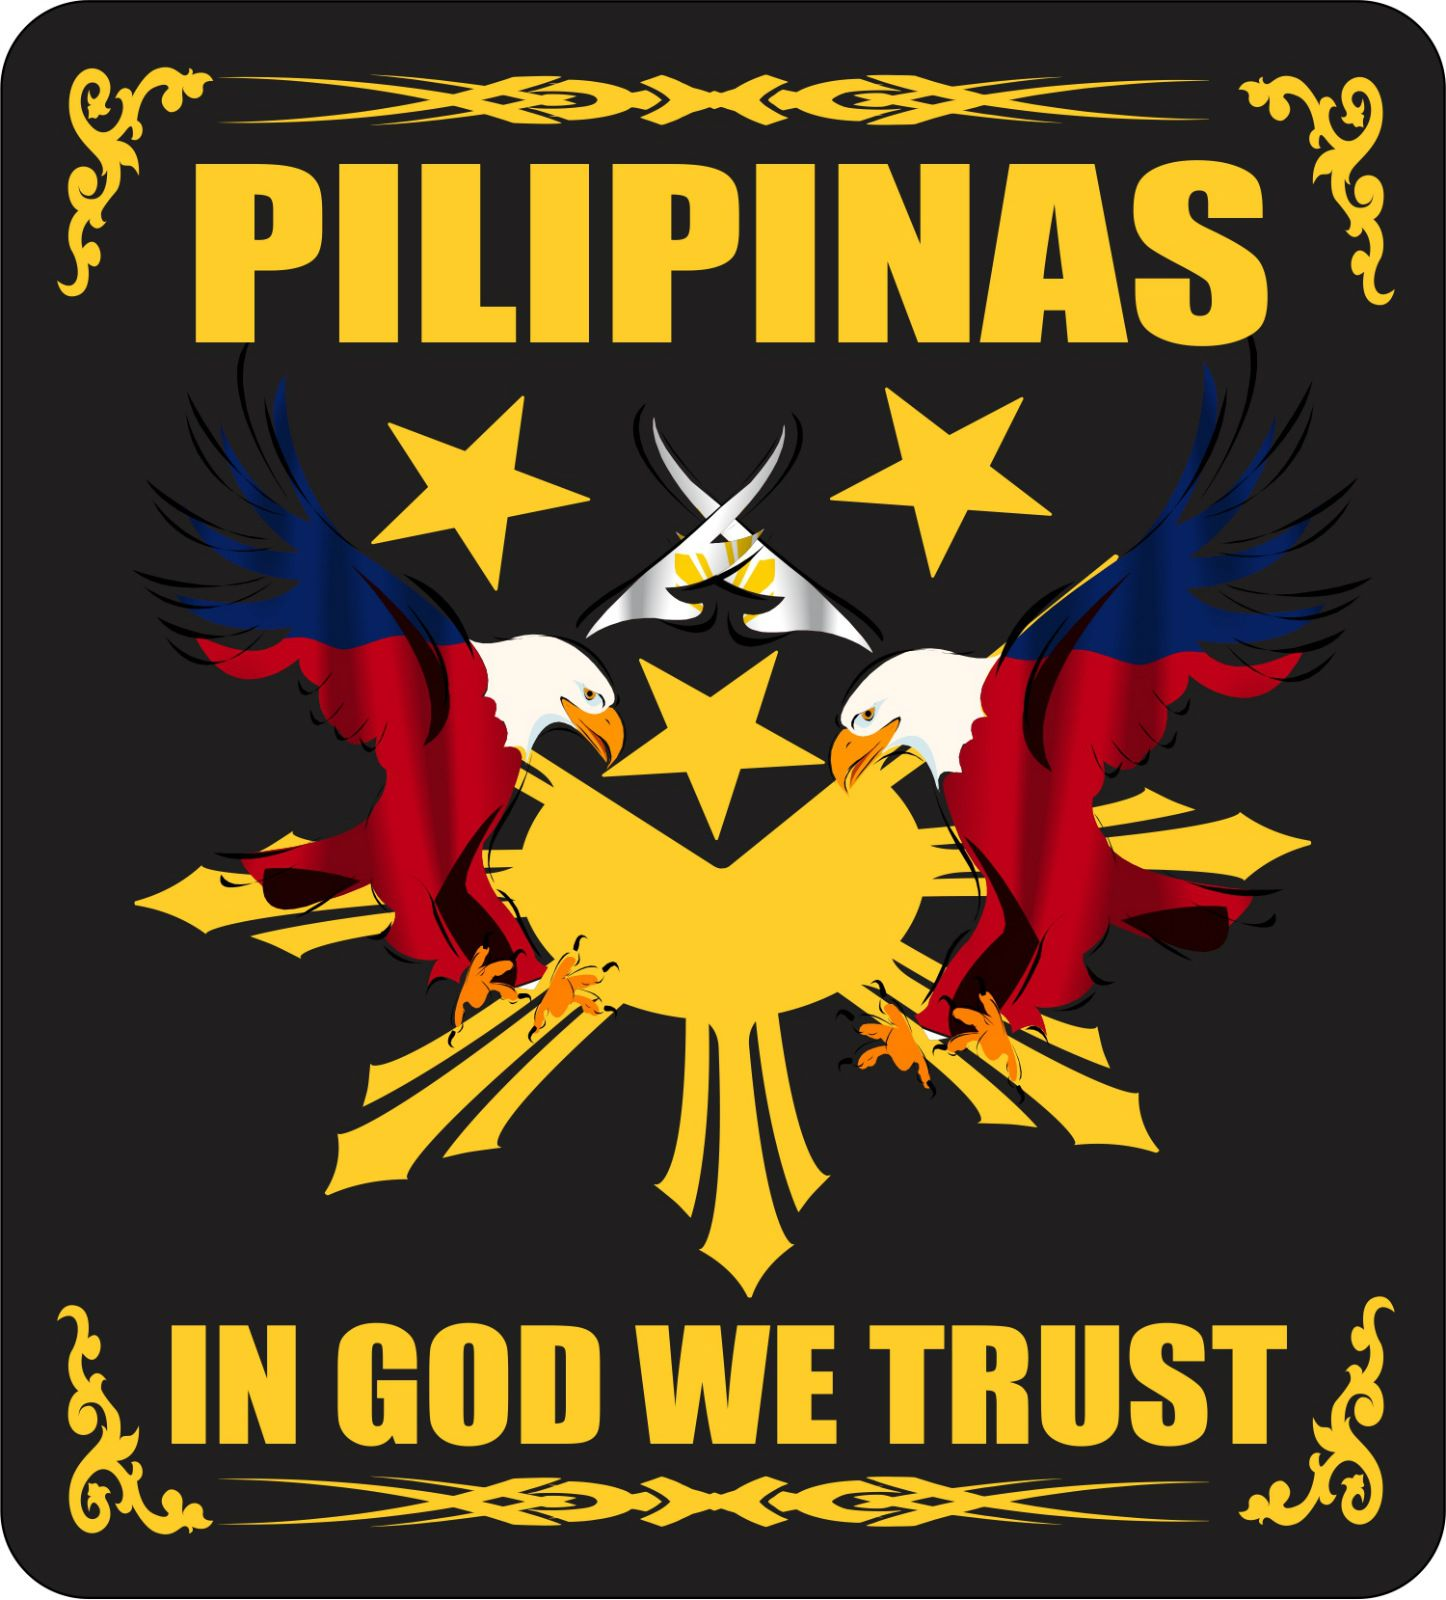 Car stickers design philippines - Selling Bumper Stickers Baseball Caps Car Accessories Car Magnets Decals Flags Wholesale And Direct To General Filipinos